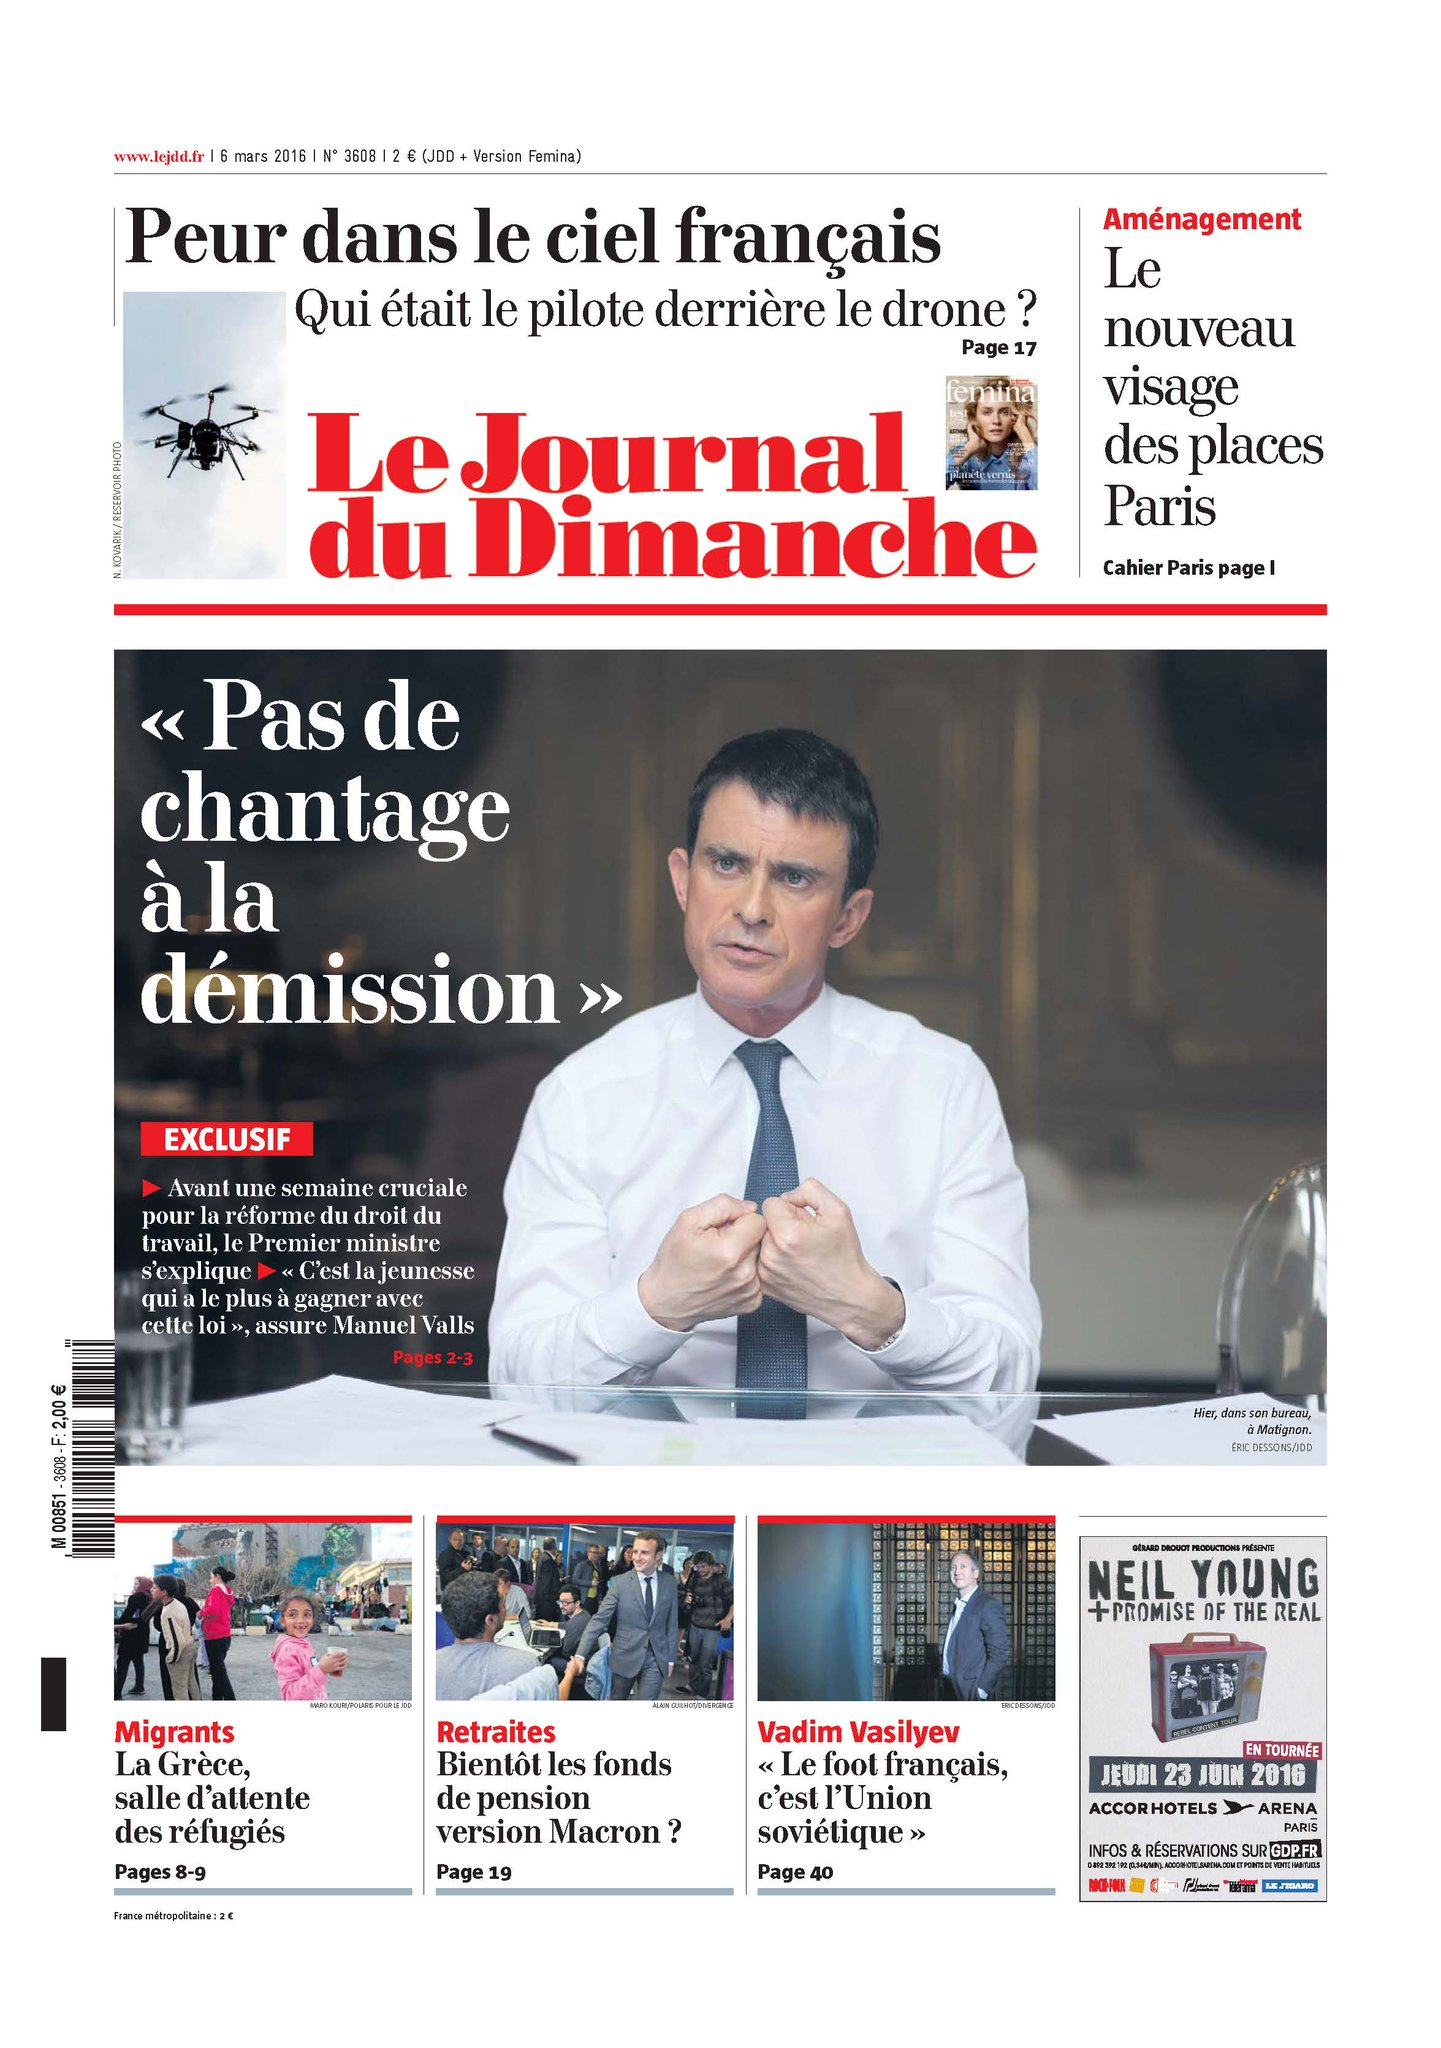 "La une du JDD. Valls : ""Pas de chantage à la démission"" ; drones, futures places parisiennes, fonds de pension. https://t.co/xbpgwzi4Uu"